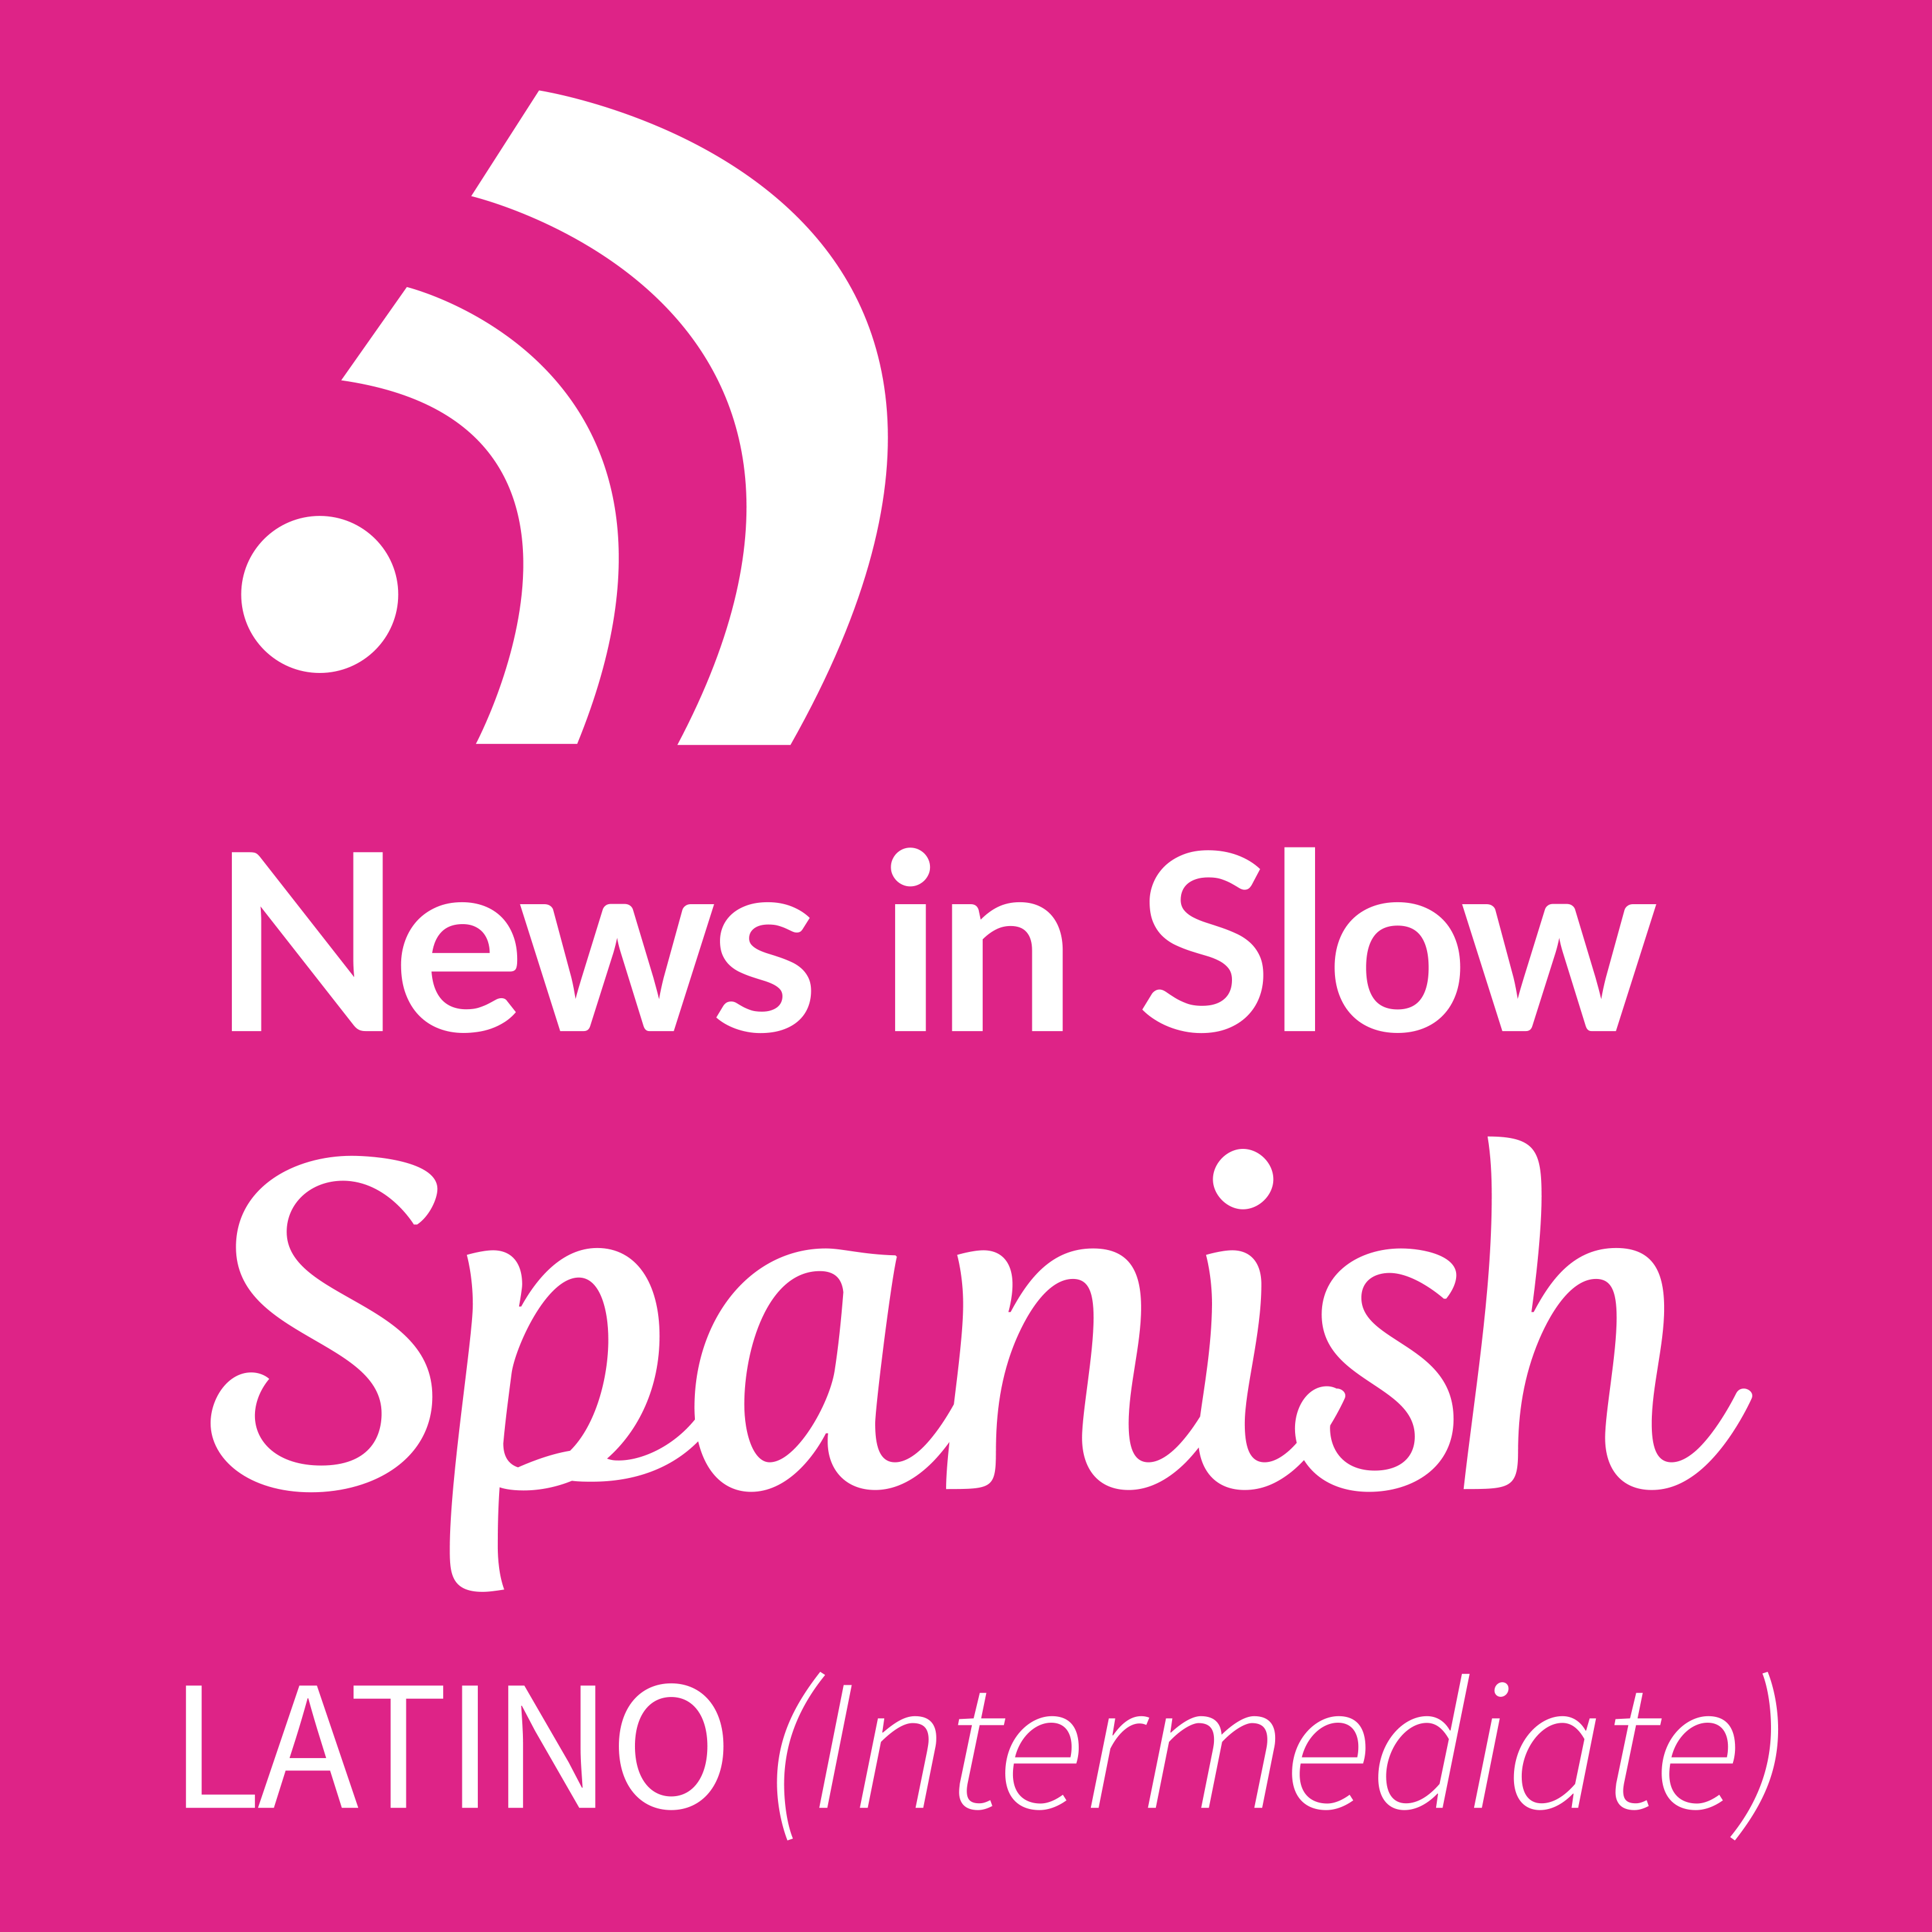 News in Slow Spanish Latino - # 163 - Language learning in the context of current events